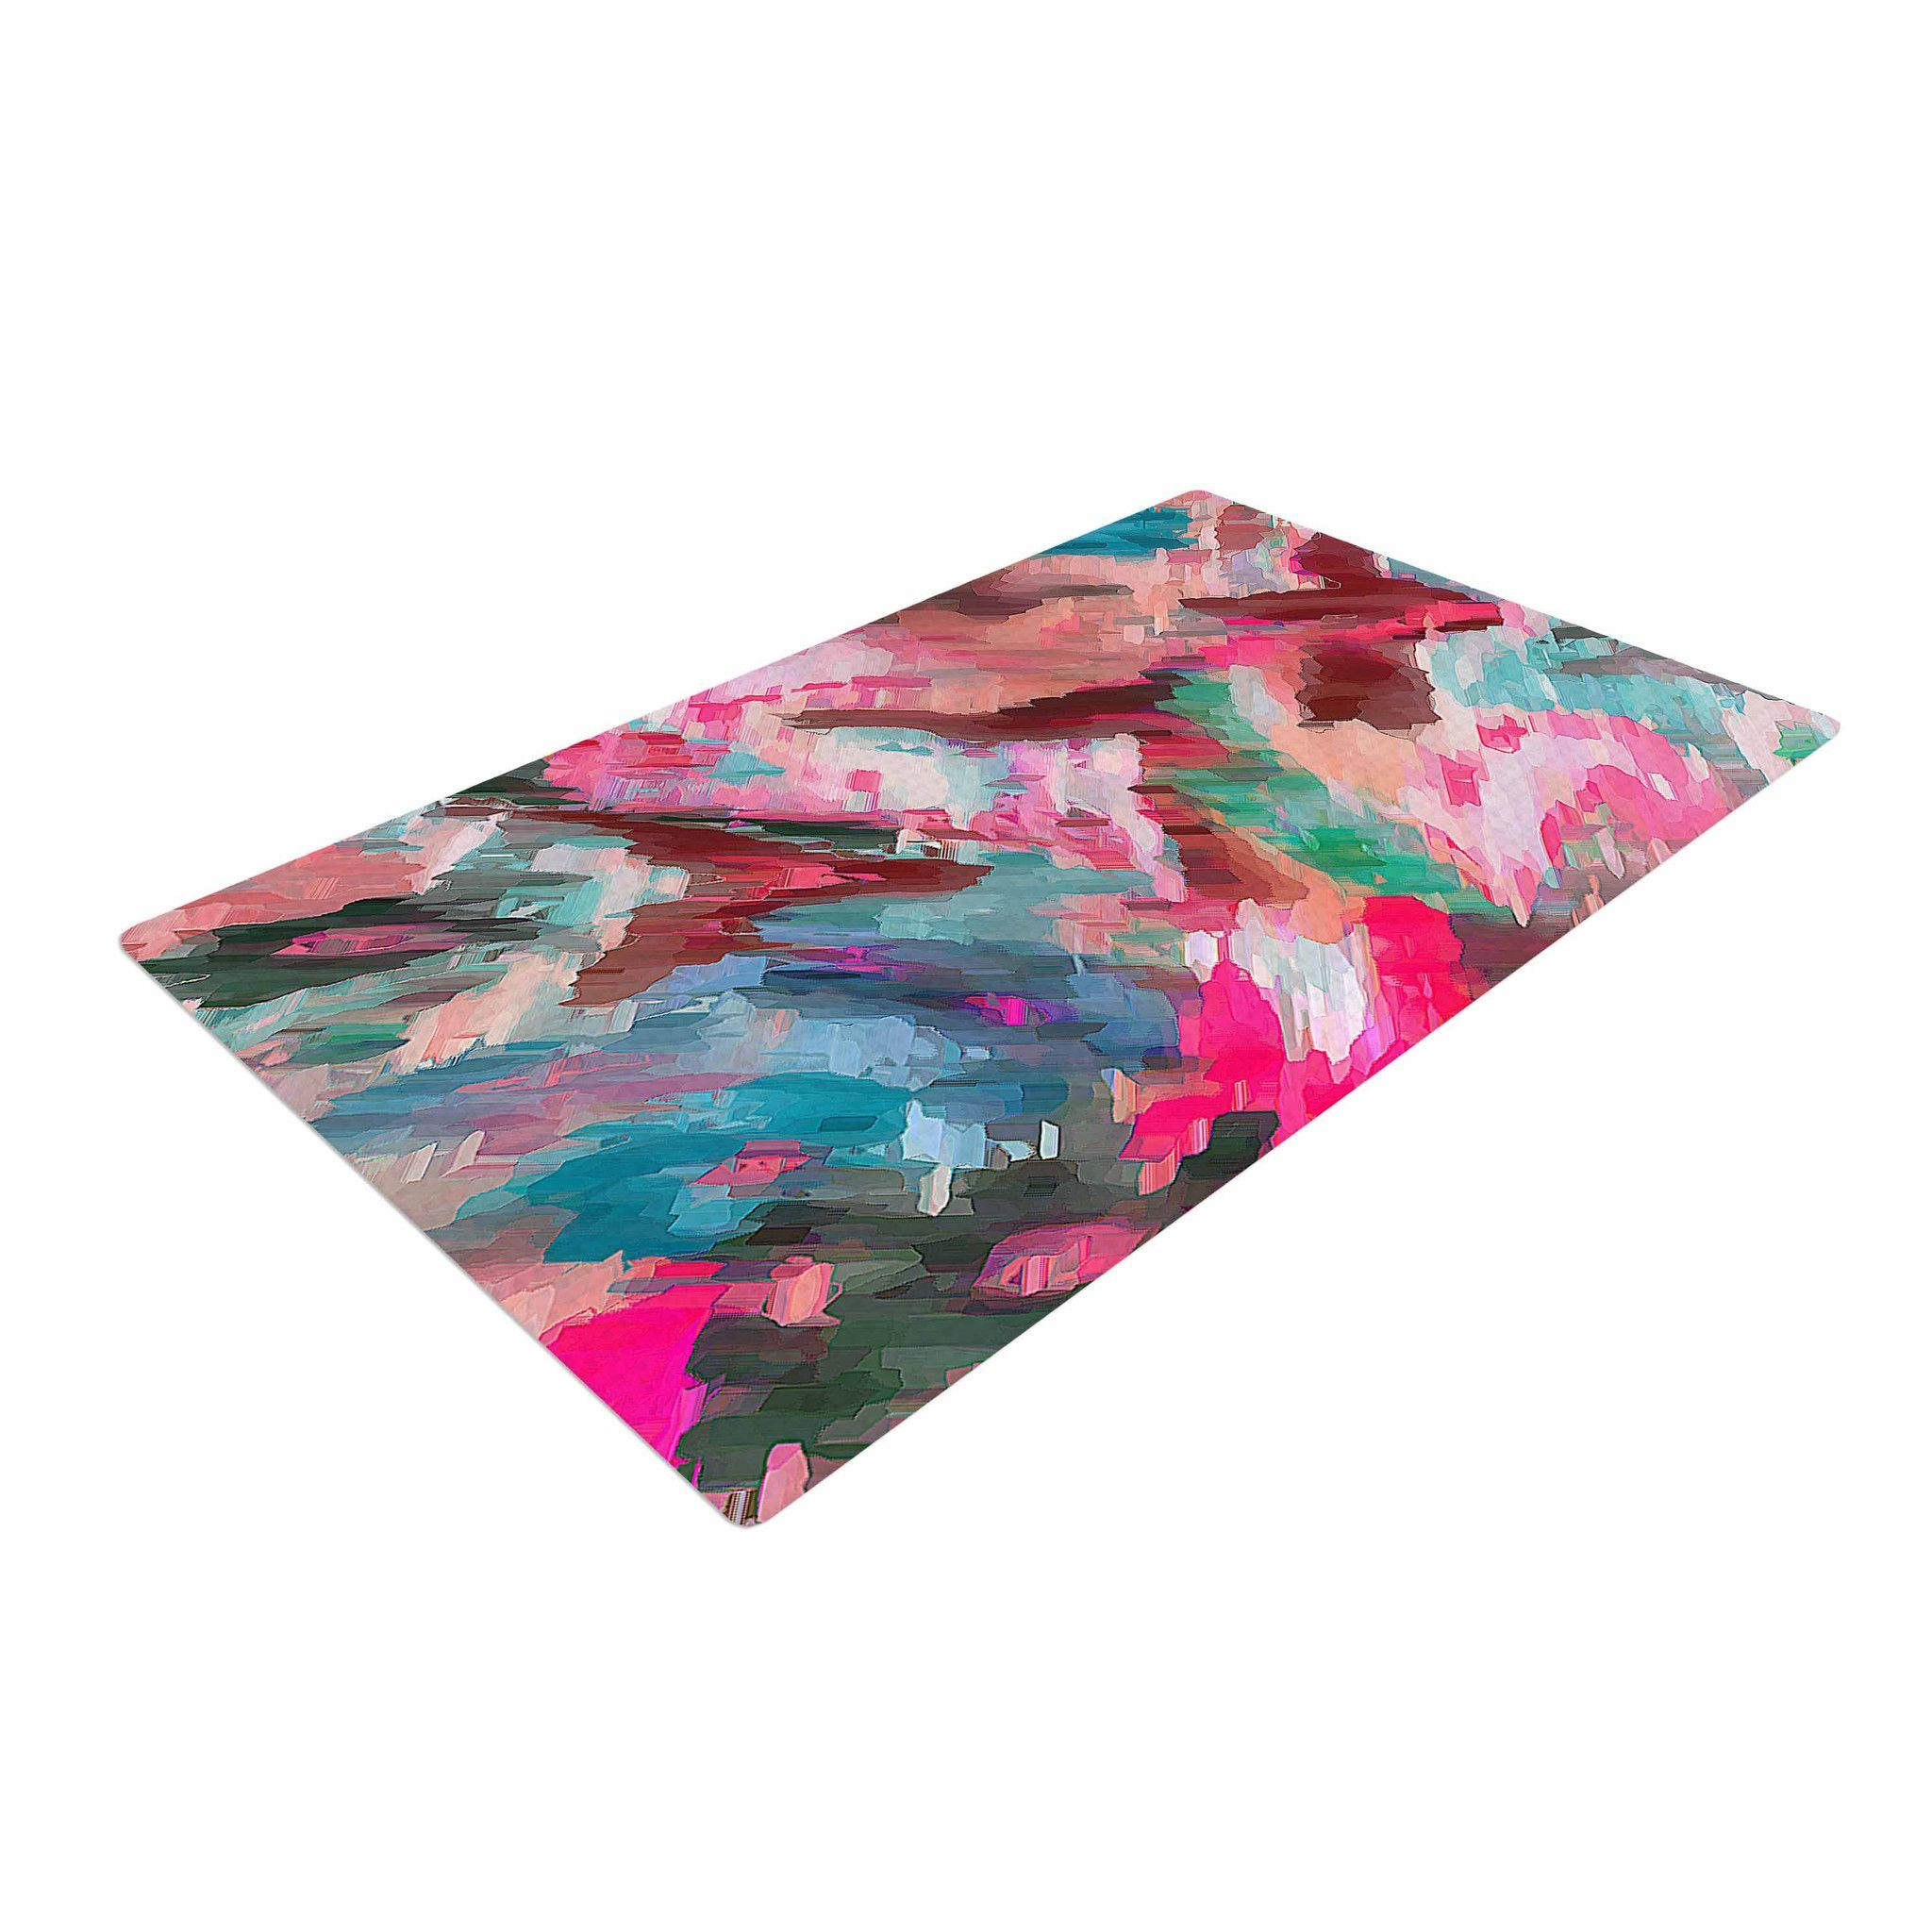 """Alison Coxon """"Giverny Pink"""" Teal Peach Woven Area Rug"""